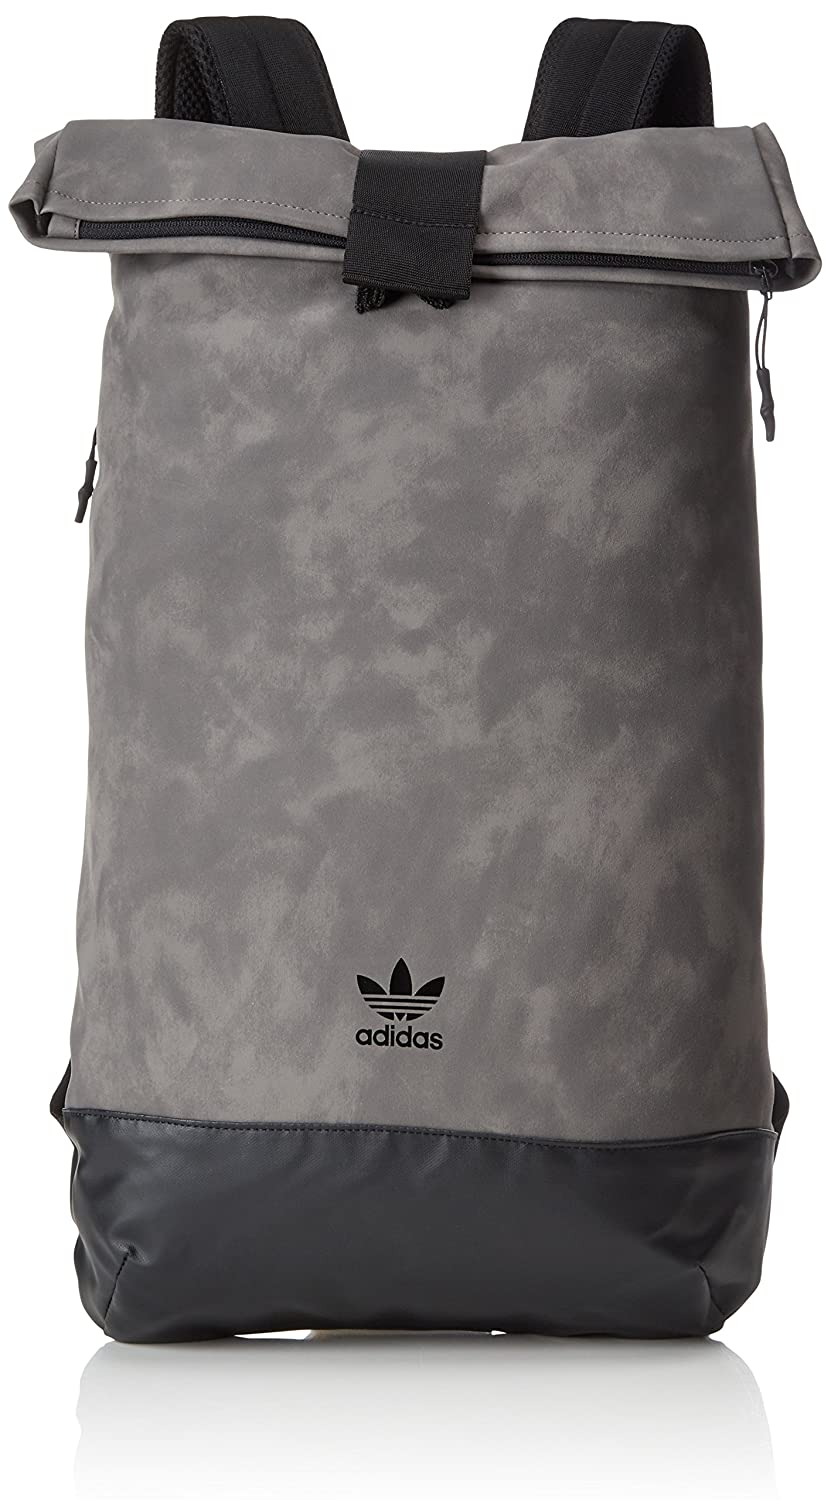 b3e2fc689 adidas Women's Roll up Urban Rucksack, Mgsogr, 42 x 28 x 11 cm:  Amazon.co.uk: Sports & Outdoors